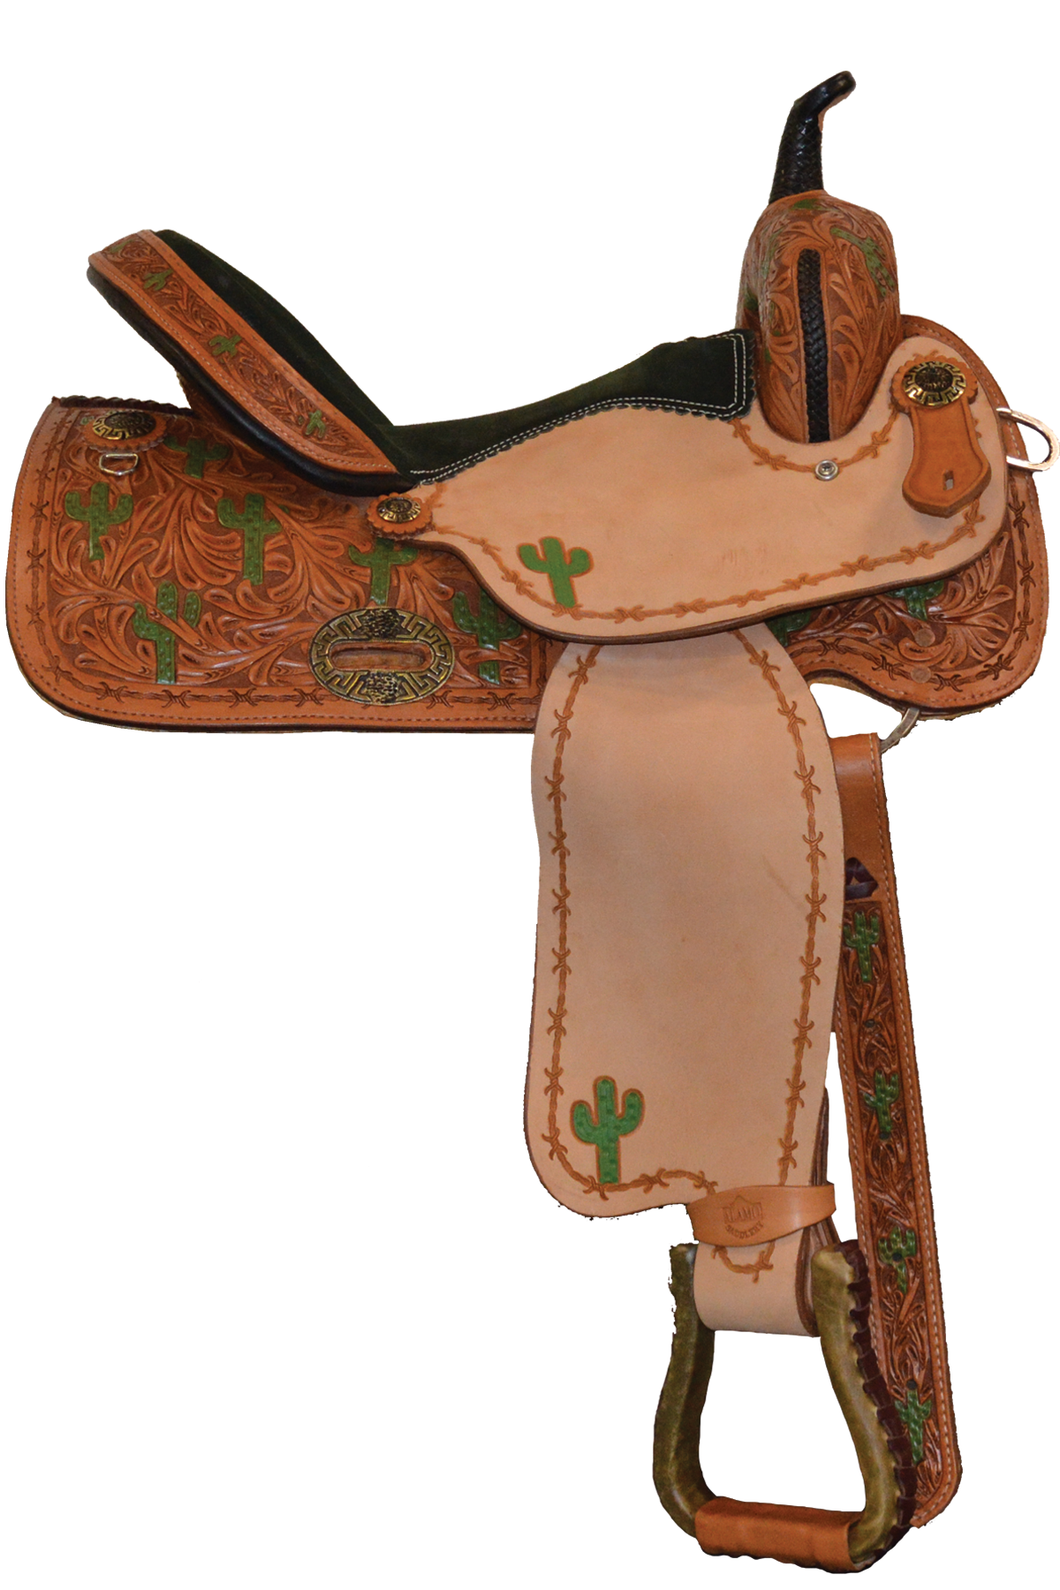 Alamo Saddlery SD-13 You Cactus This Barrel Saddle